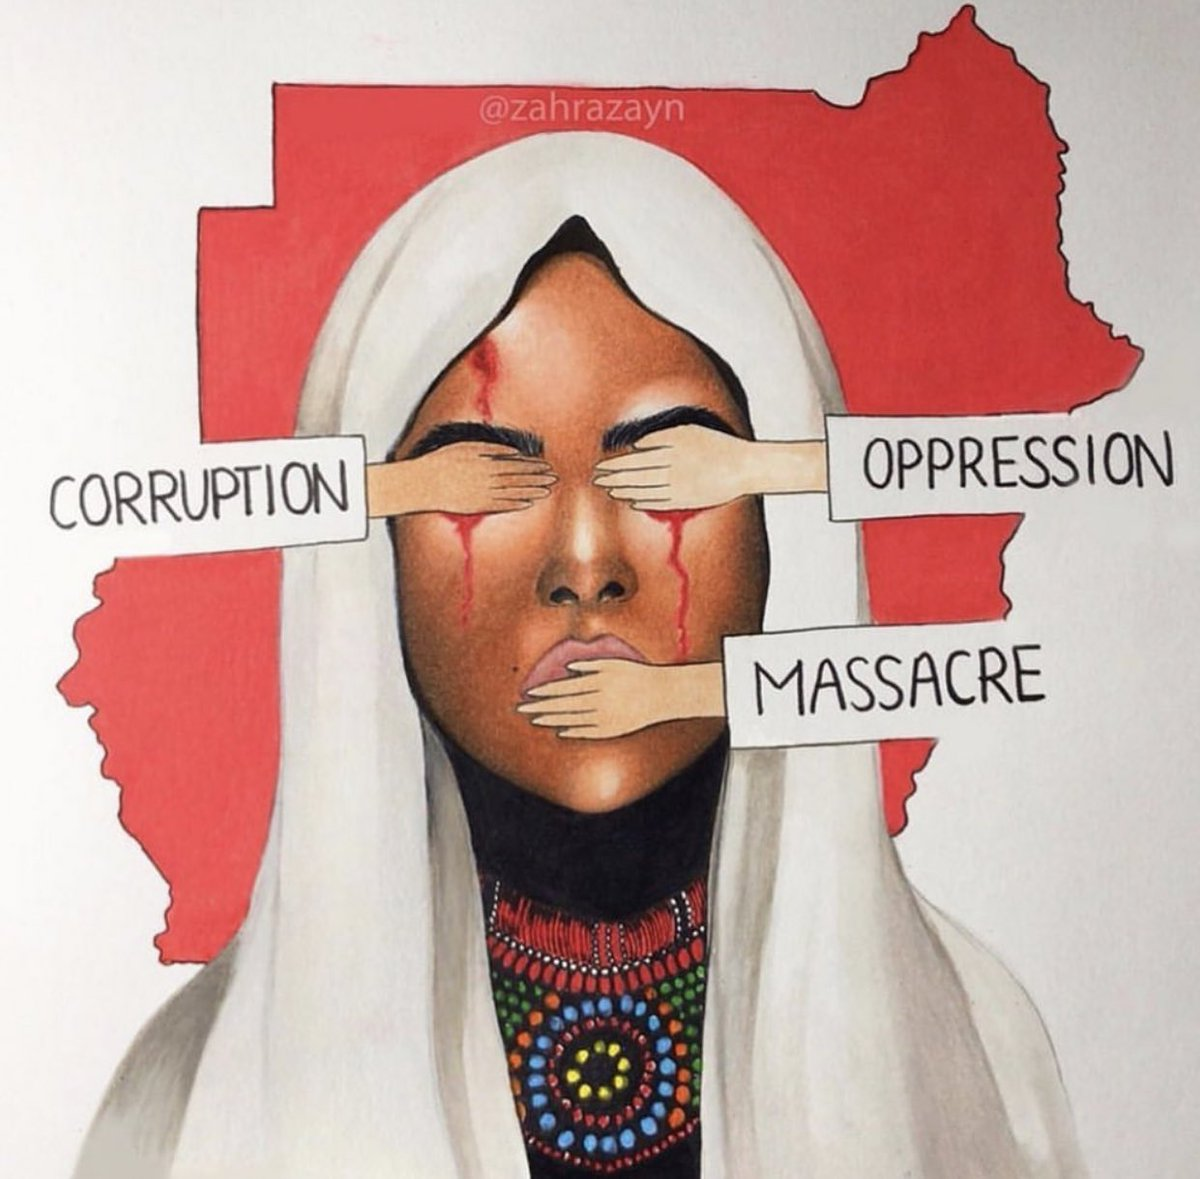 Give Sudan the same energy you gave an empty building in Paris. #SudanMassacre